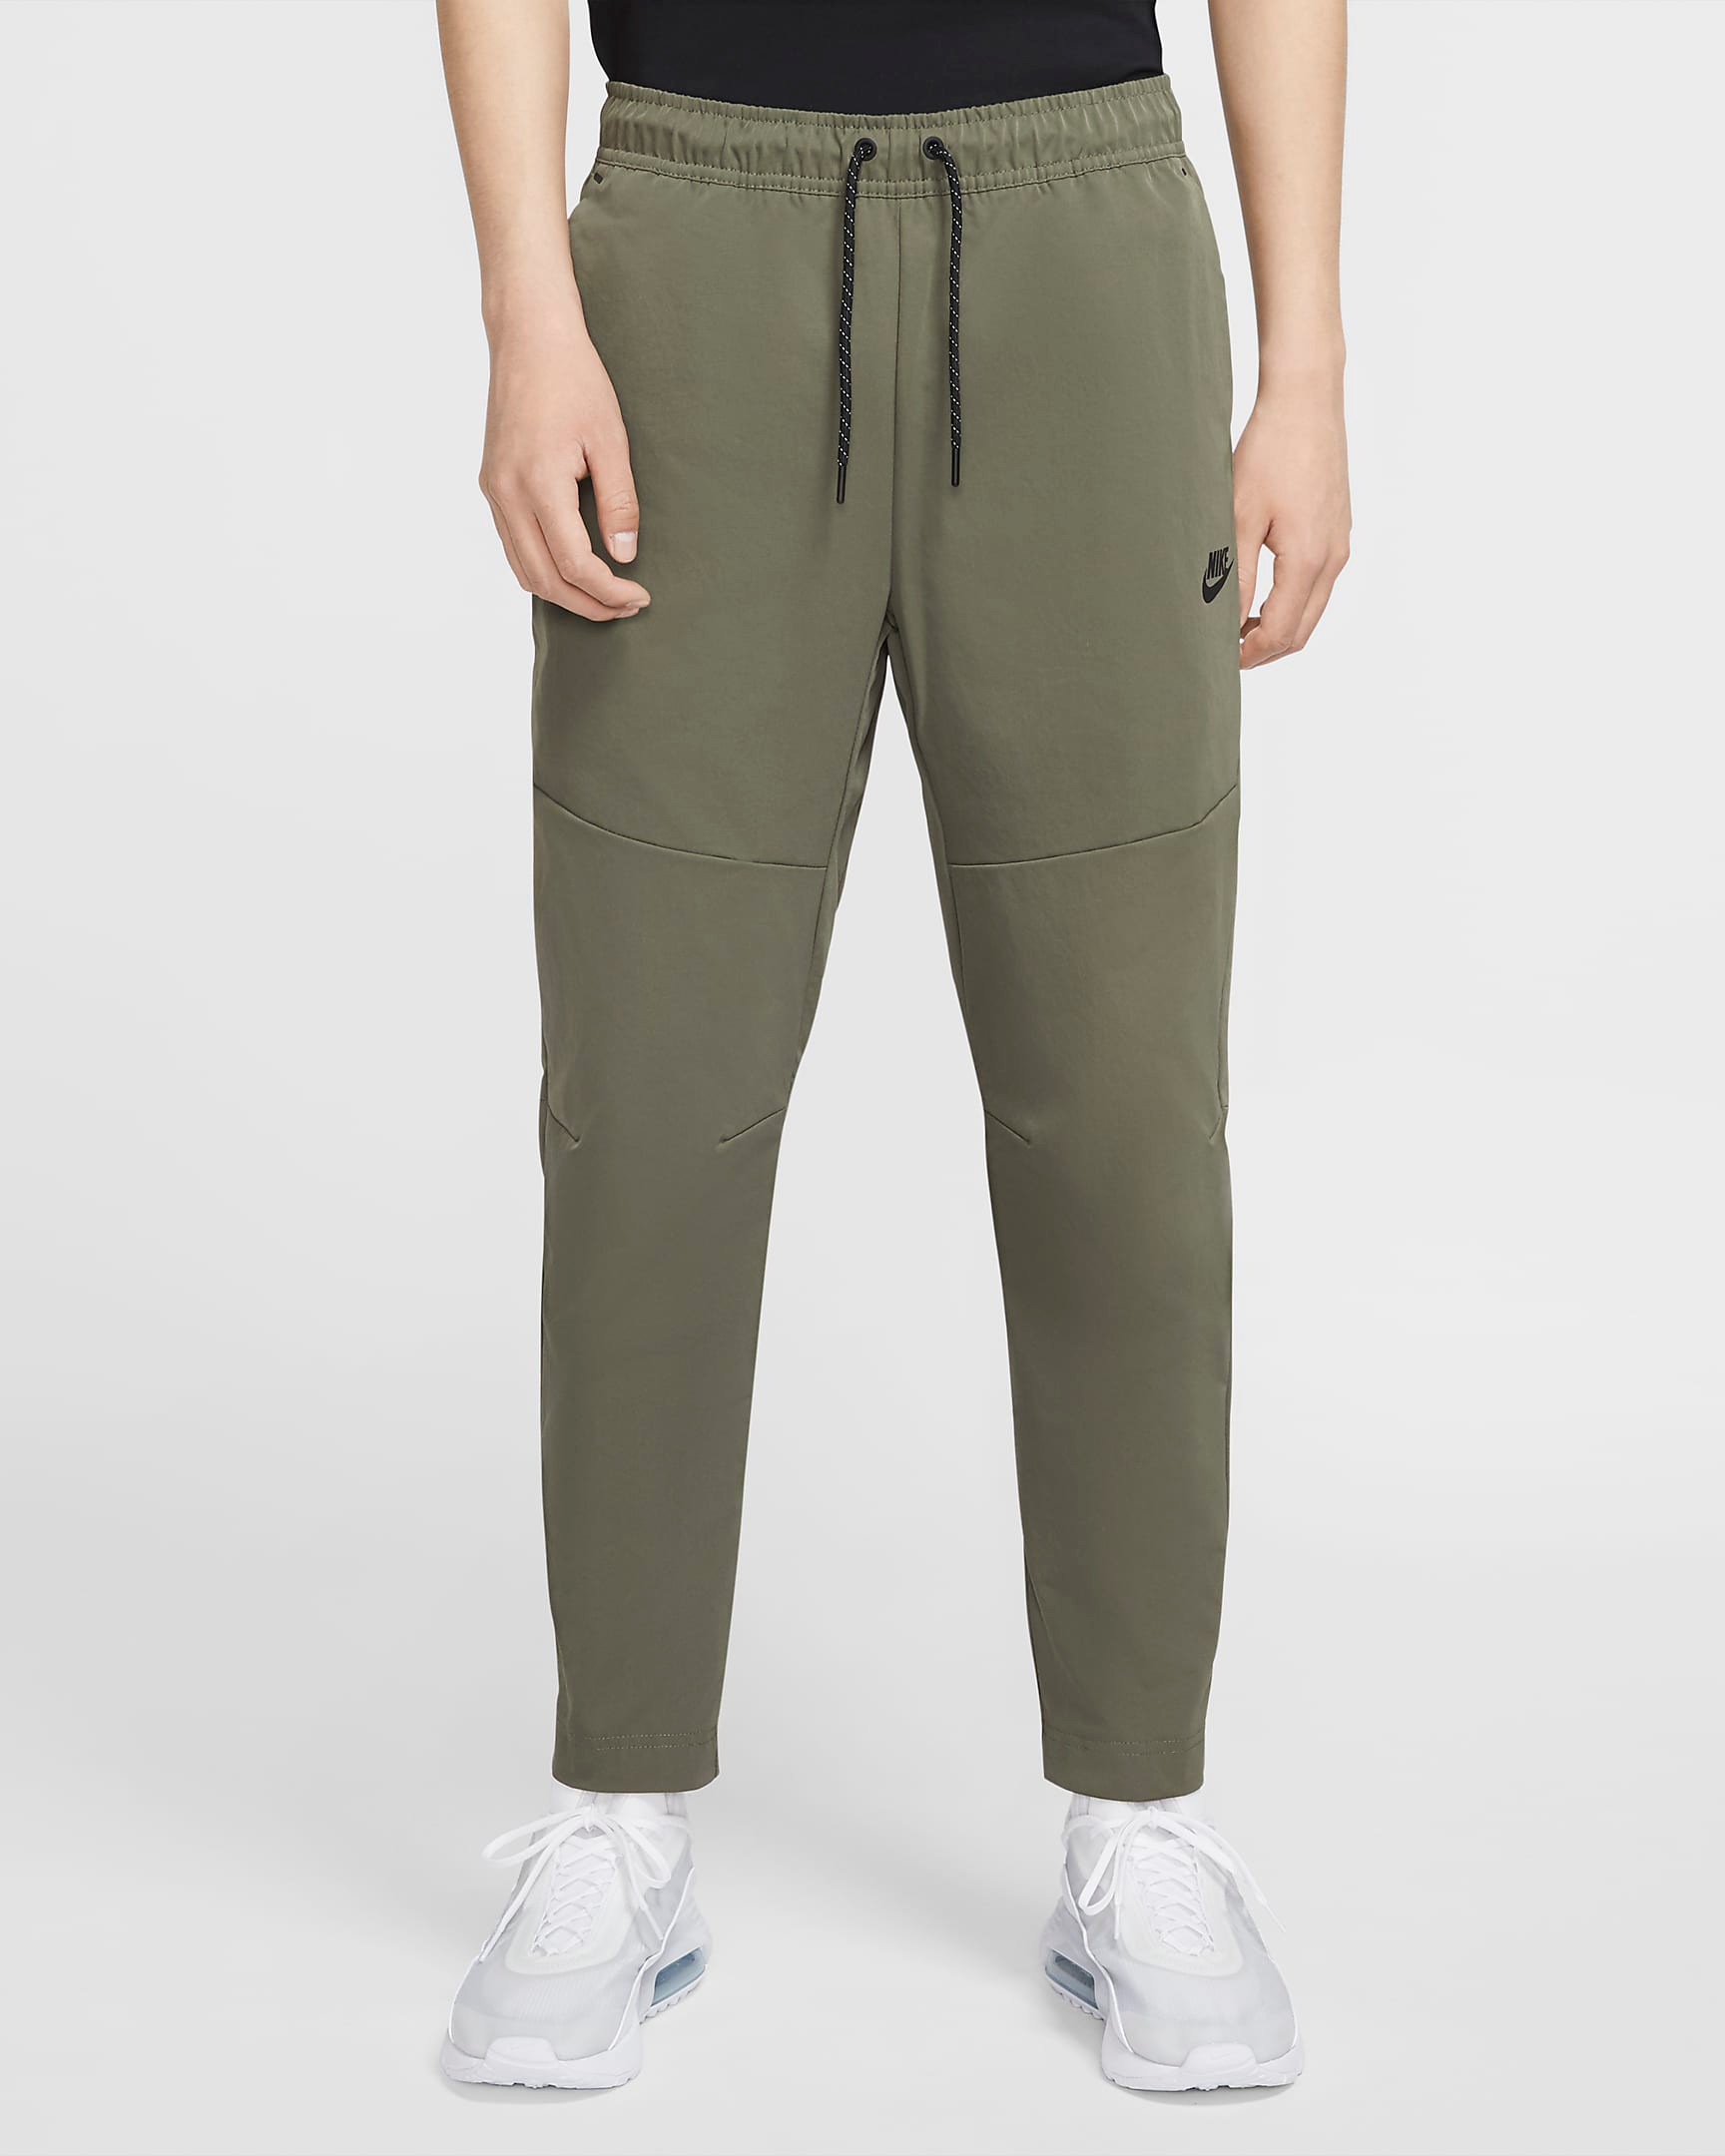 nike-air-tuned-max-celery-pants-1